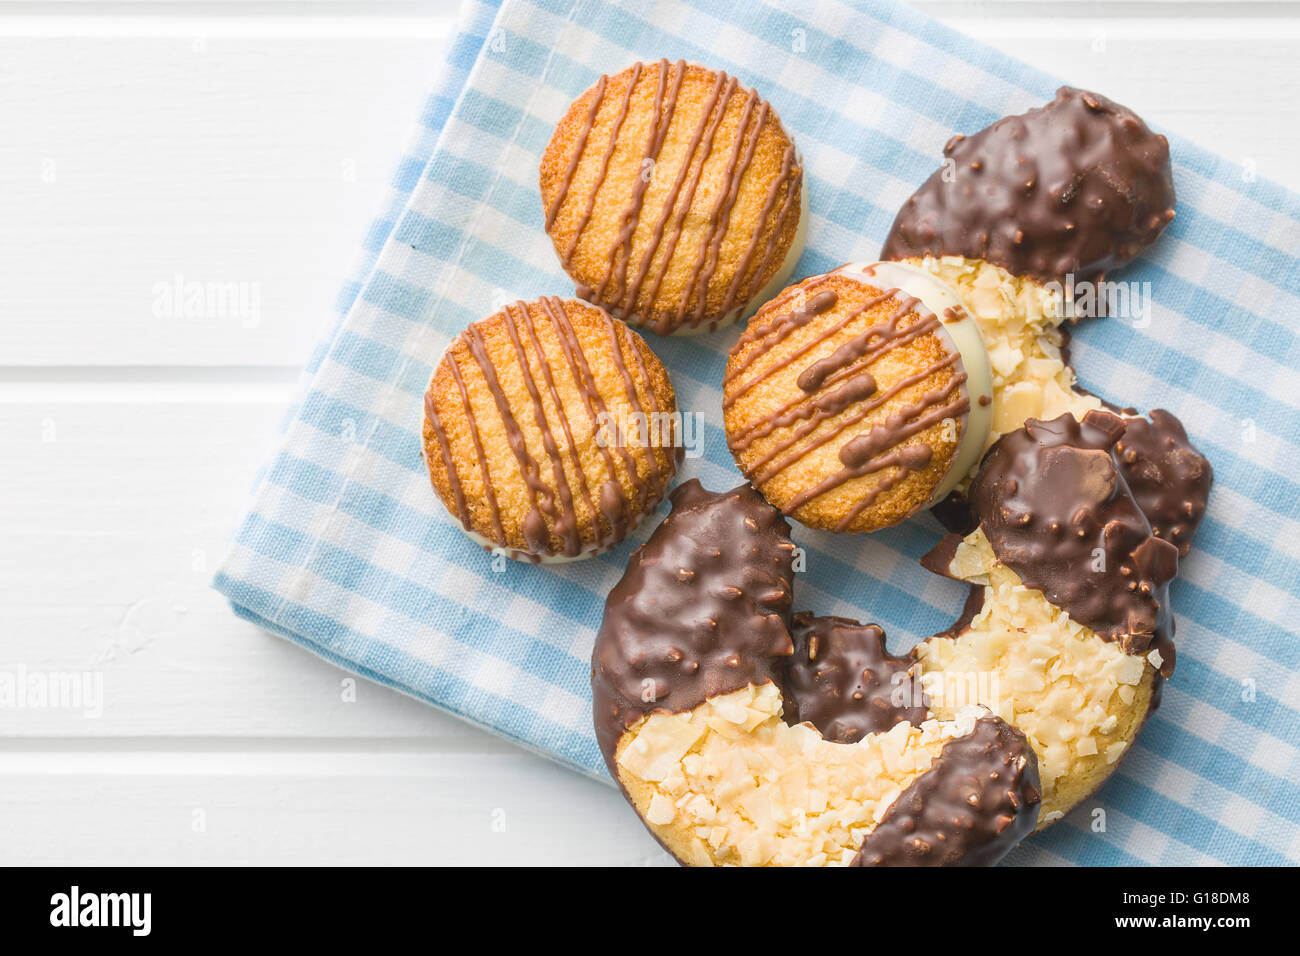 Sweet dessert. Biscuits with chocolate icing on checkered napkin. - Stock Image